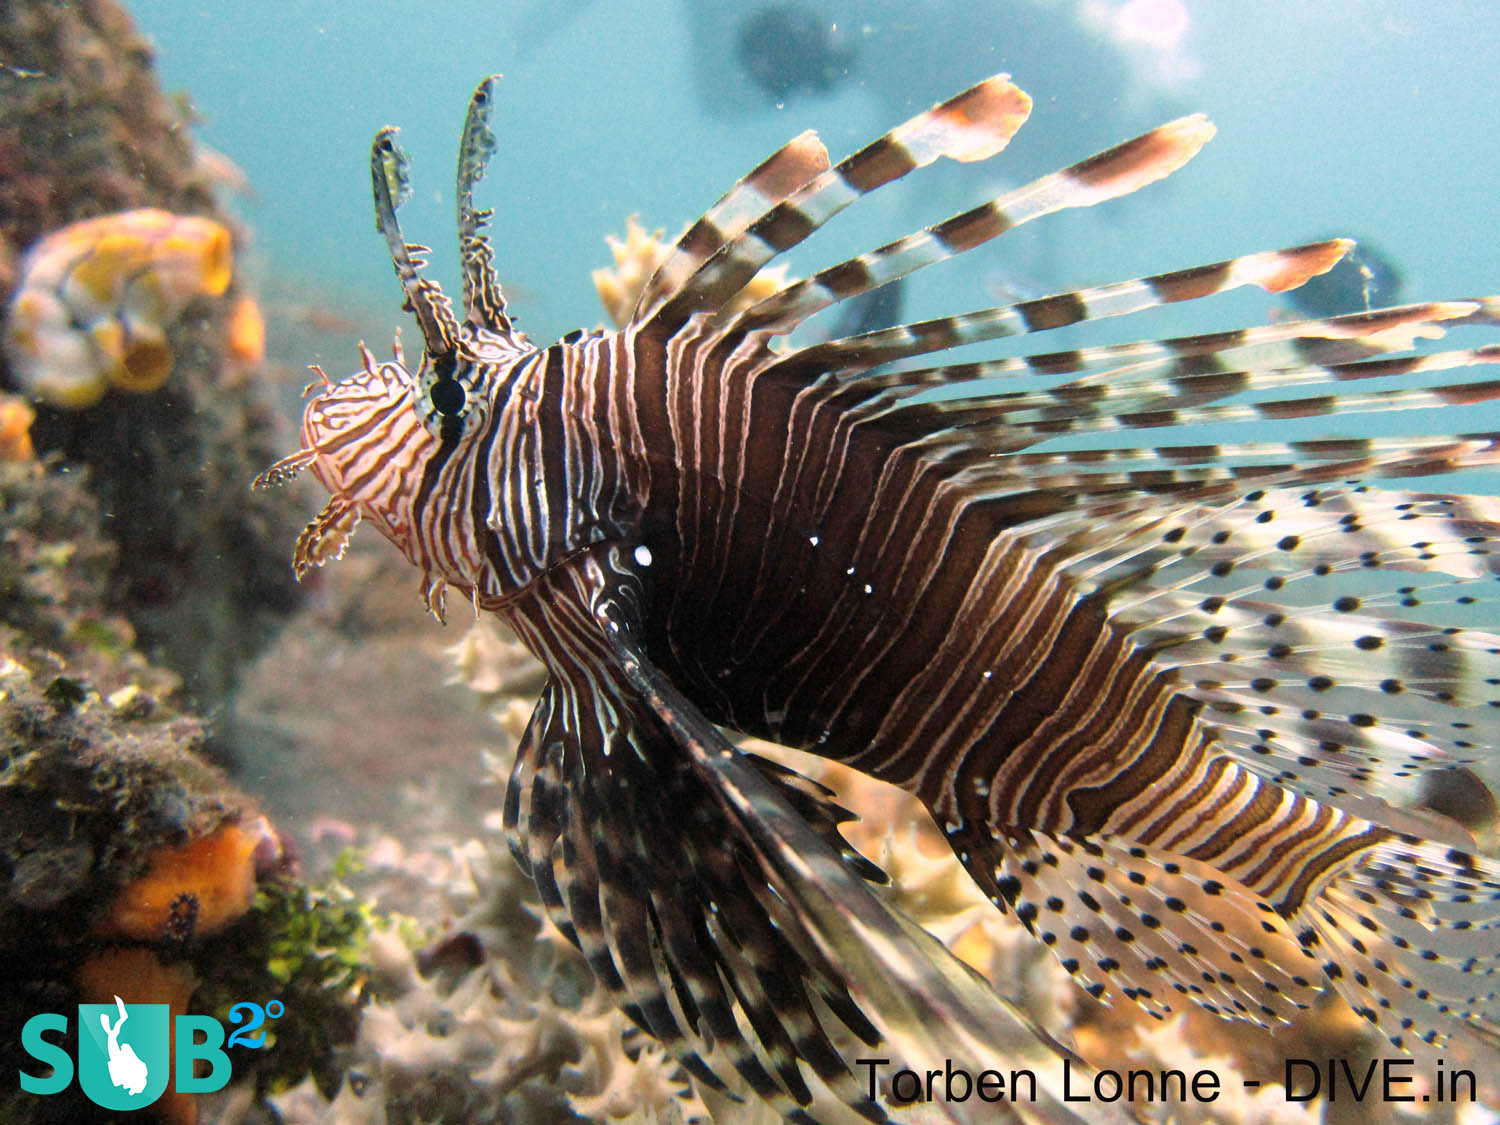 The lionfish has a stunning camouflage that it uses to effectively stalk its prey. Its outstretched and elongated pectoral fins are used to corner small fish, like Damsels, and to engulf them easily.